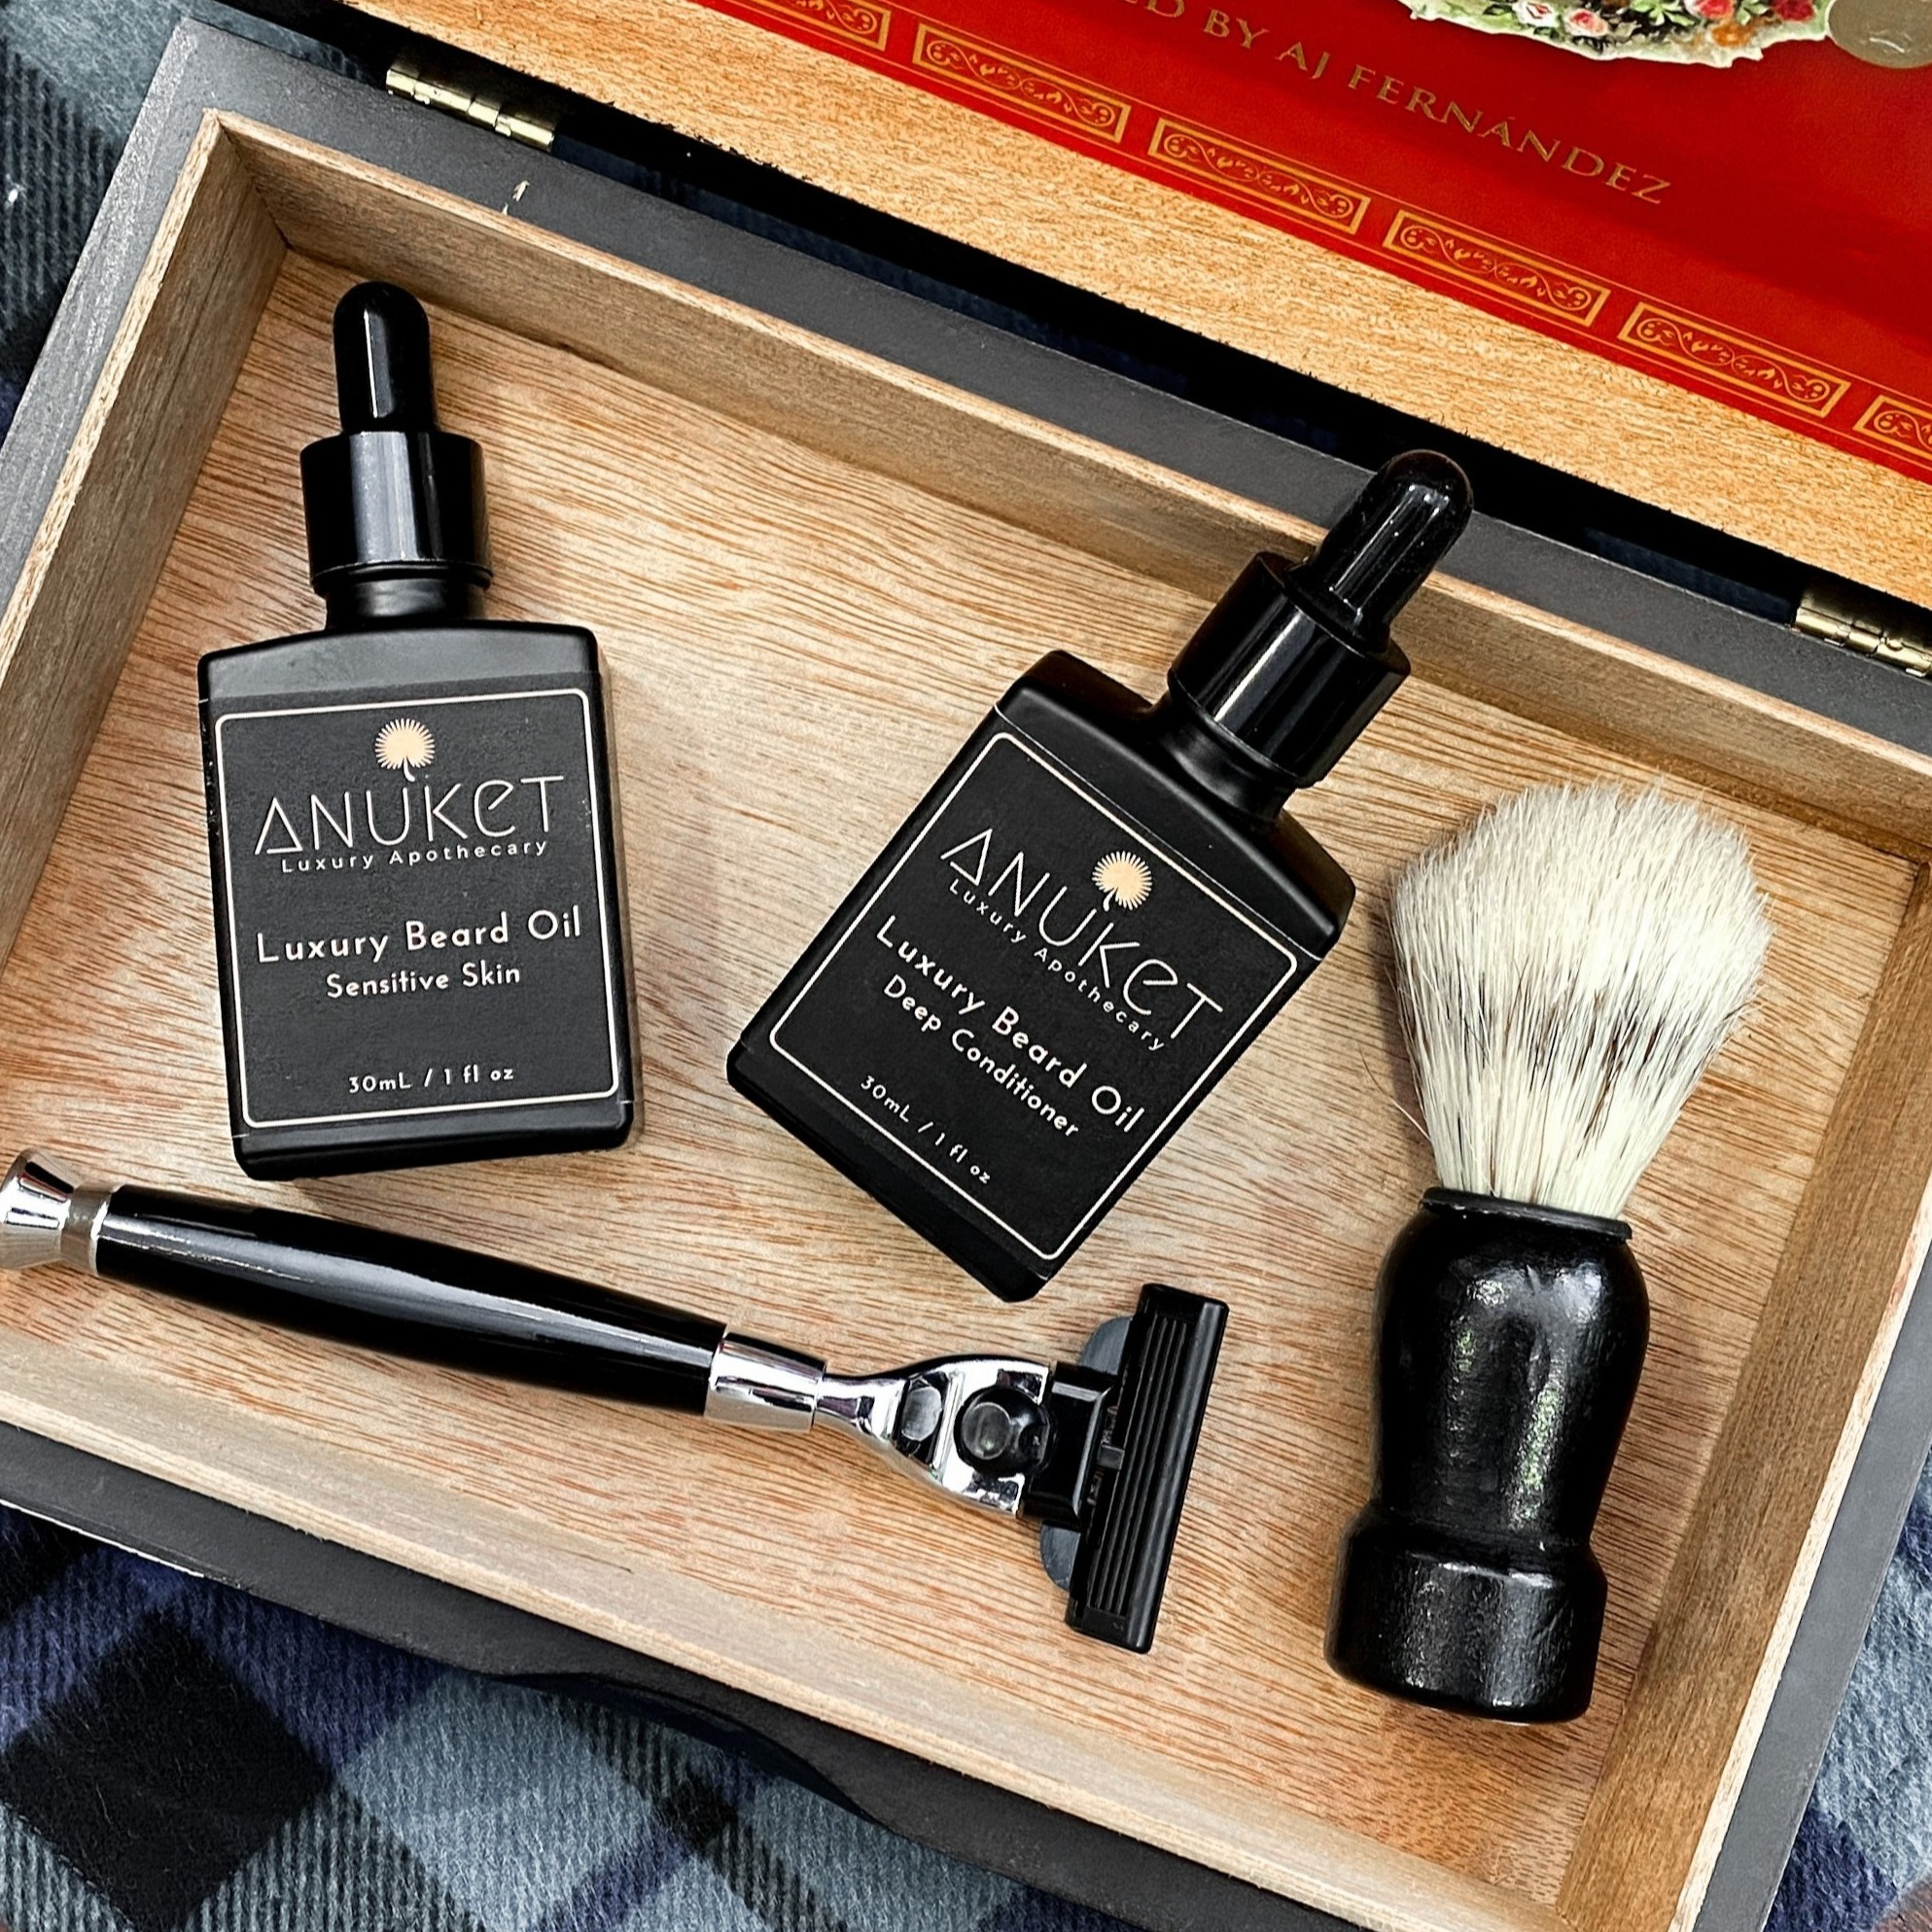 Link to Shop Anuket Luxury Oil new beard care products